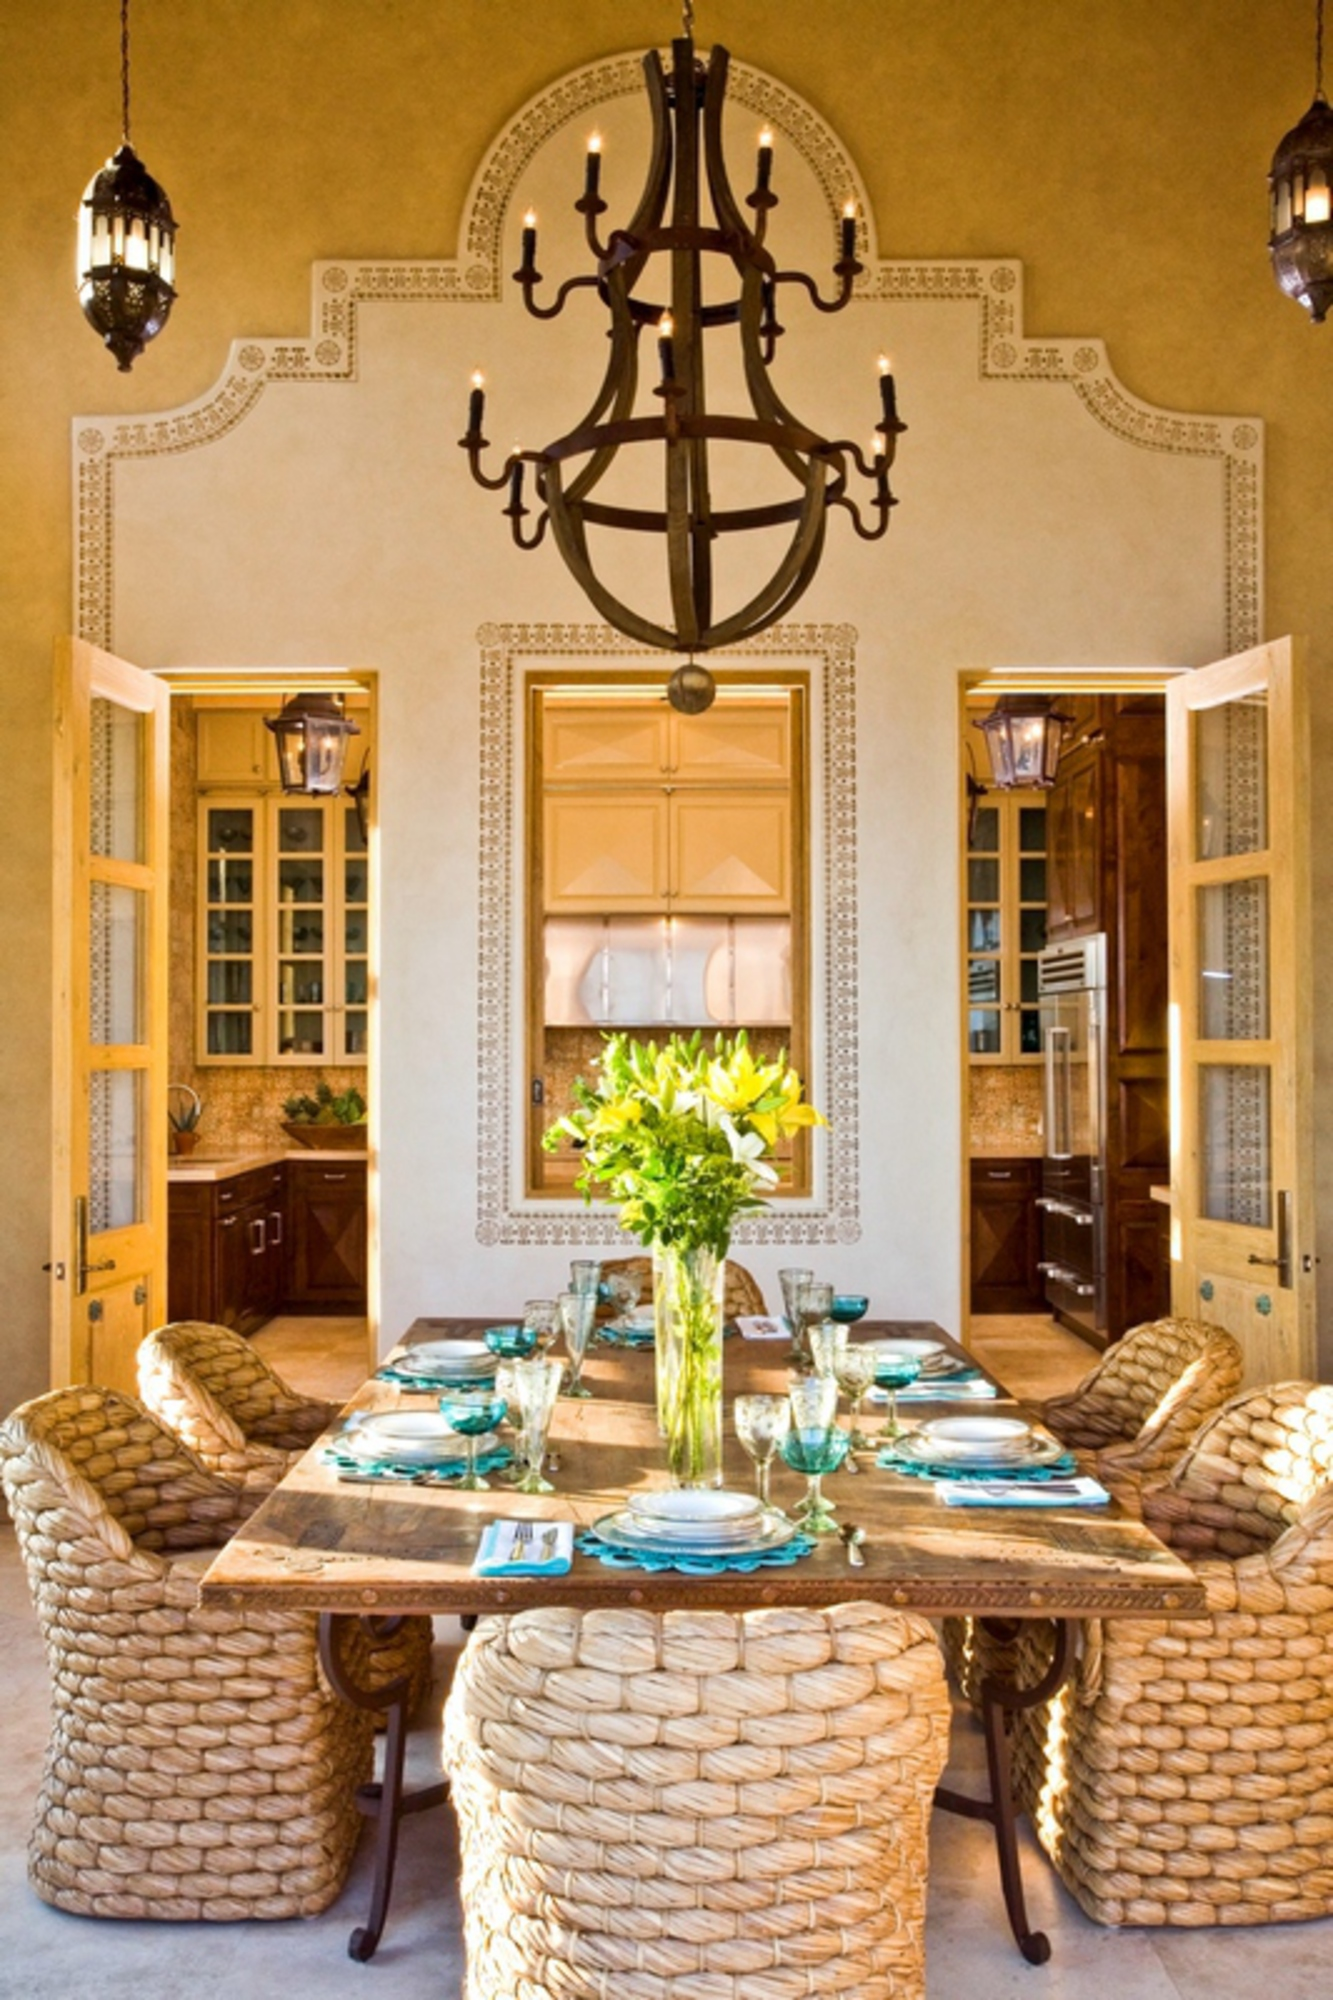 House Tour-Tropical Paradise in Cabo San Jose 4.jpg